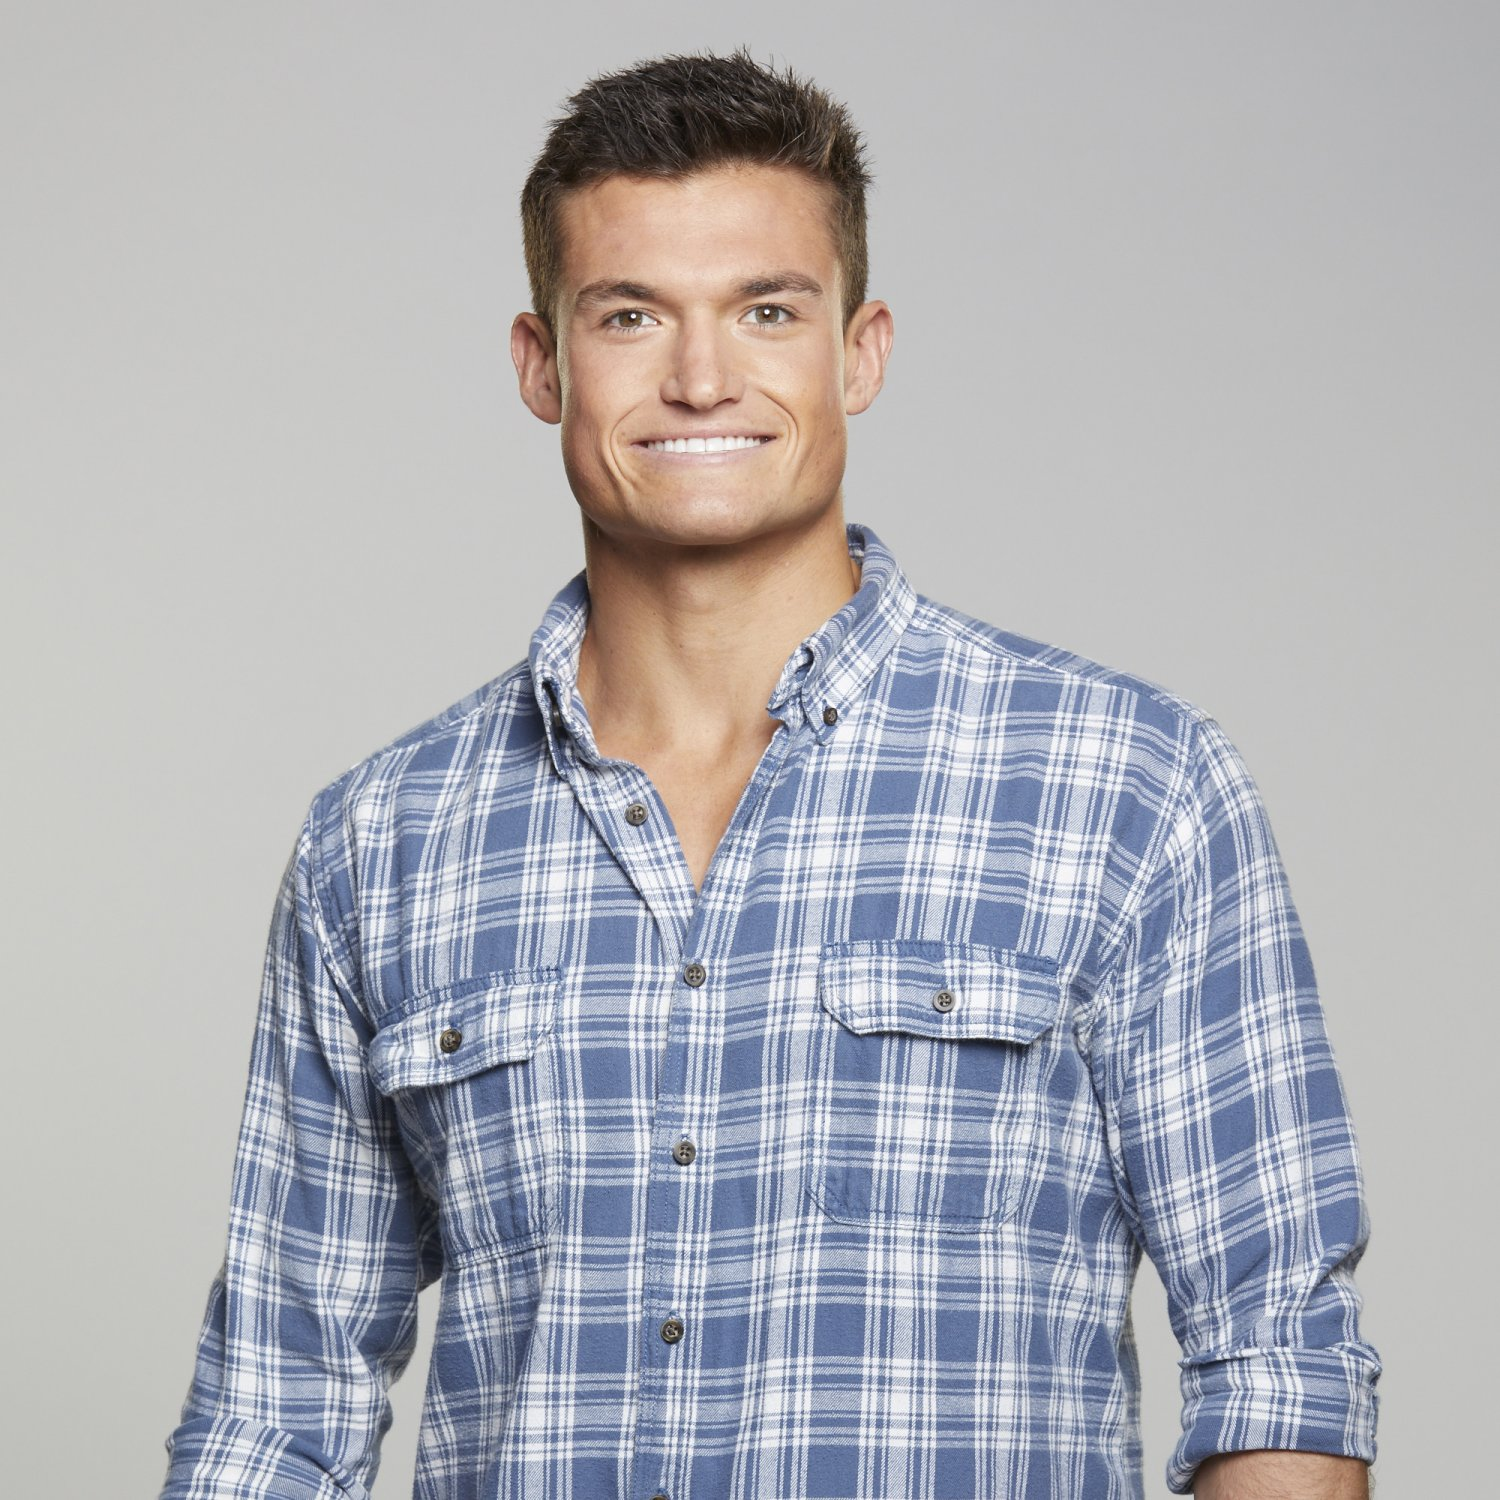 Why Big Brother Alums Are Furious With The Casts